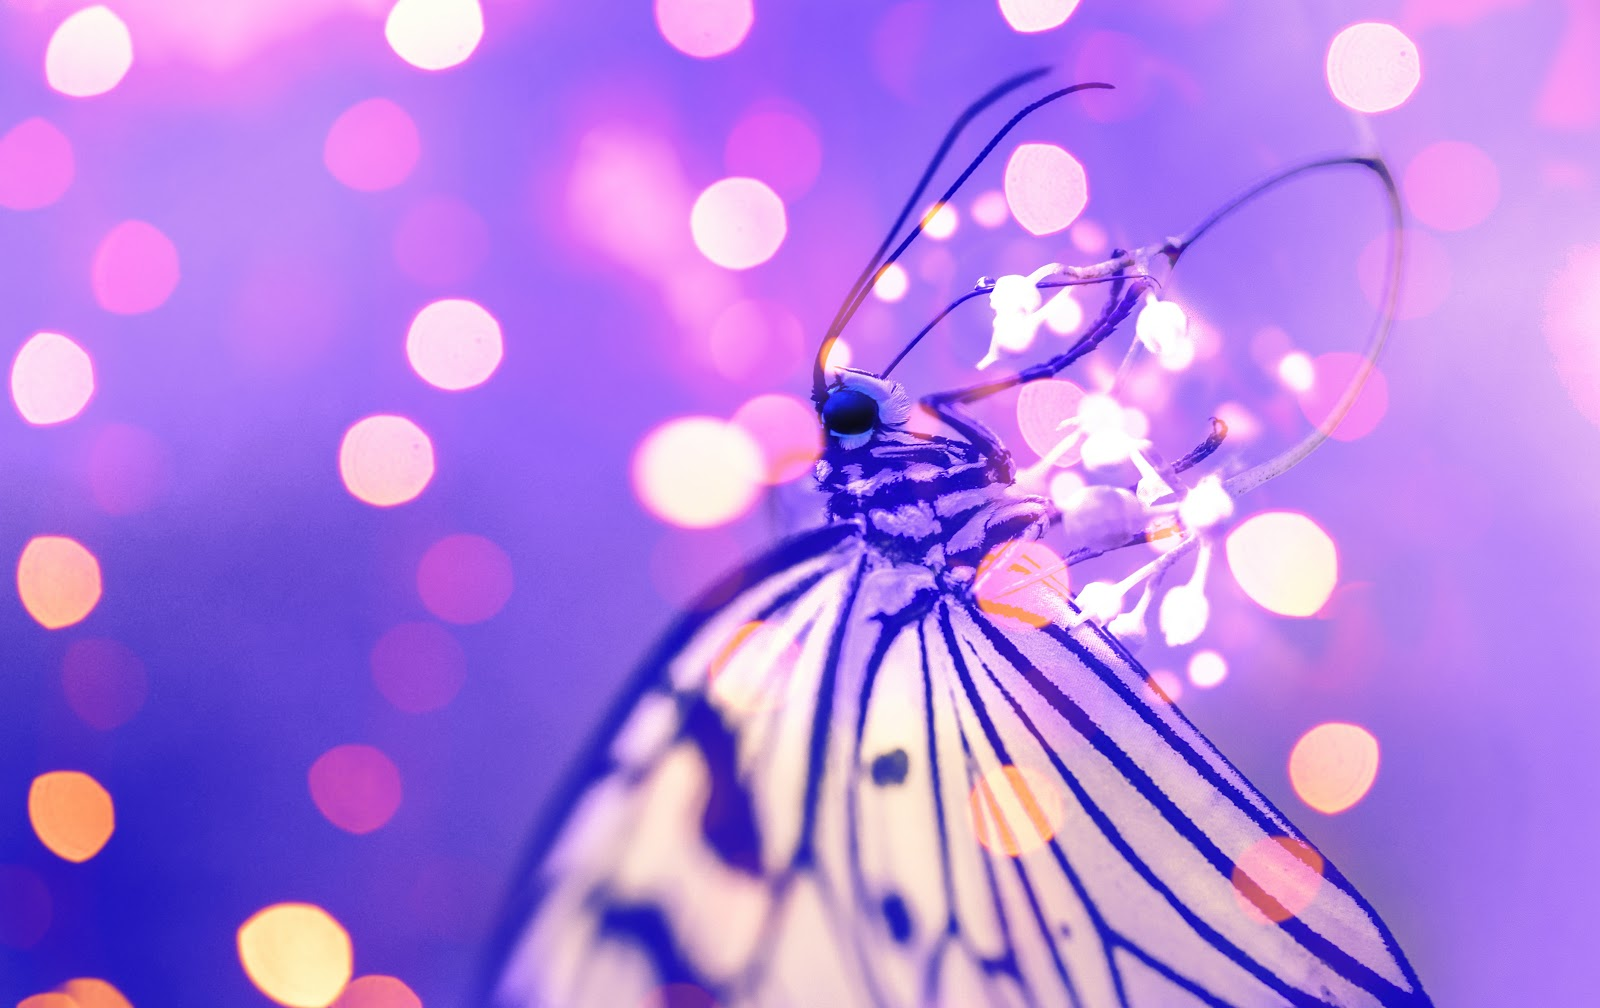 macro-photography-of-butterfly-near-lights-images